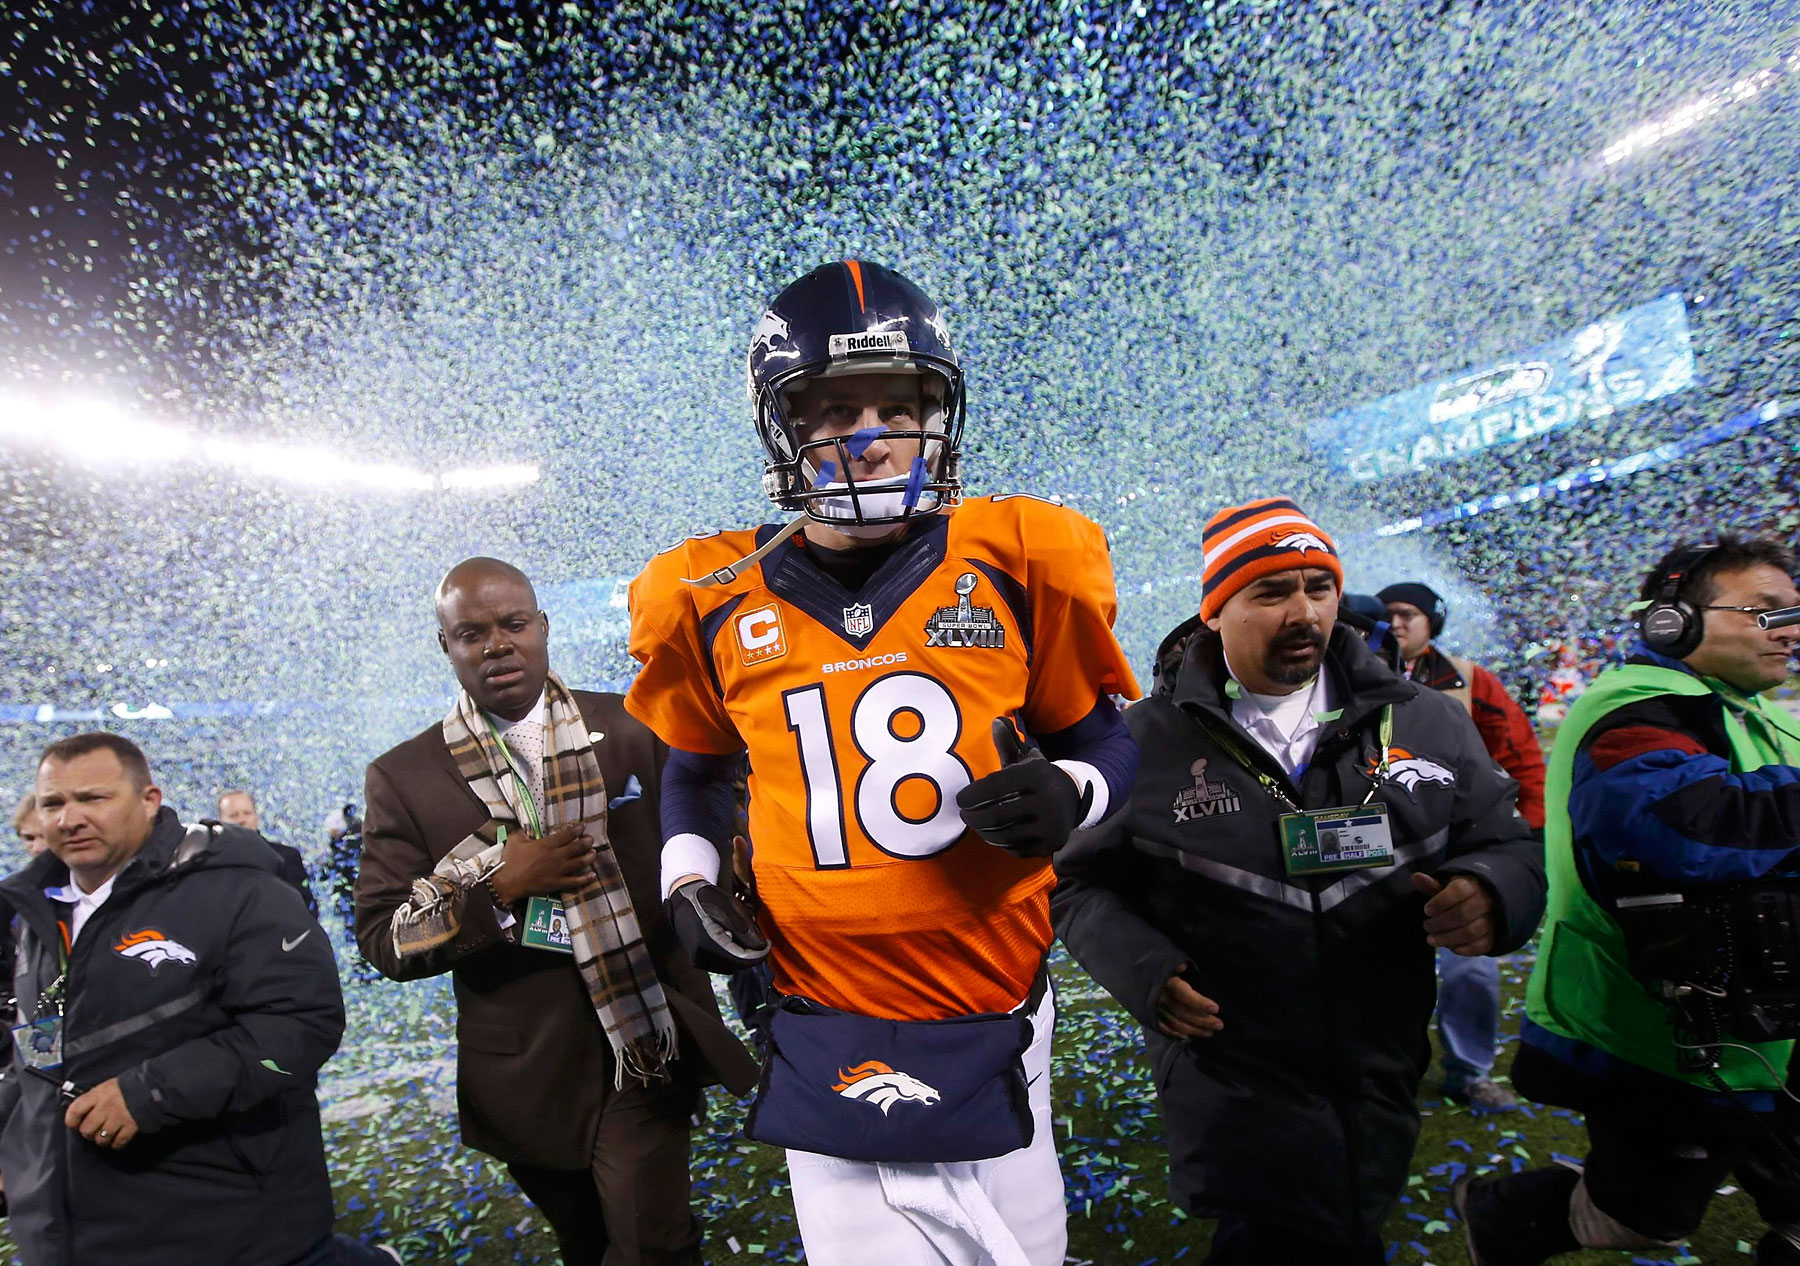 Denver Broncos quarterback Peyton Manning runs off the field after being defeated by the Seattle Seahawks in the NFL Super Bowl XLVIII.